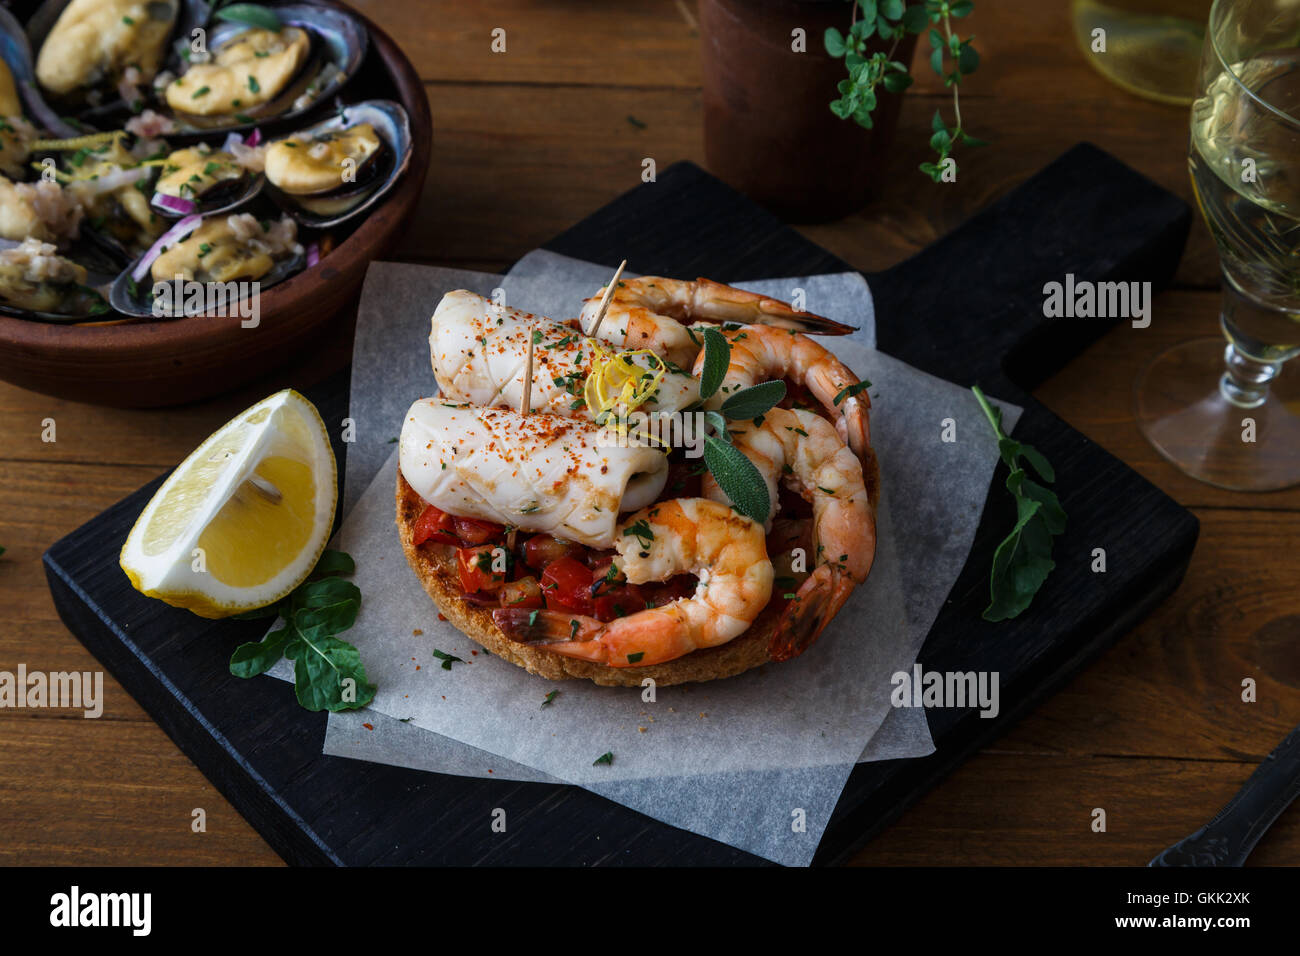 Tapas with shrimp and squid on wooden board, from top. Stock Photo